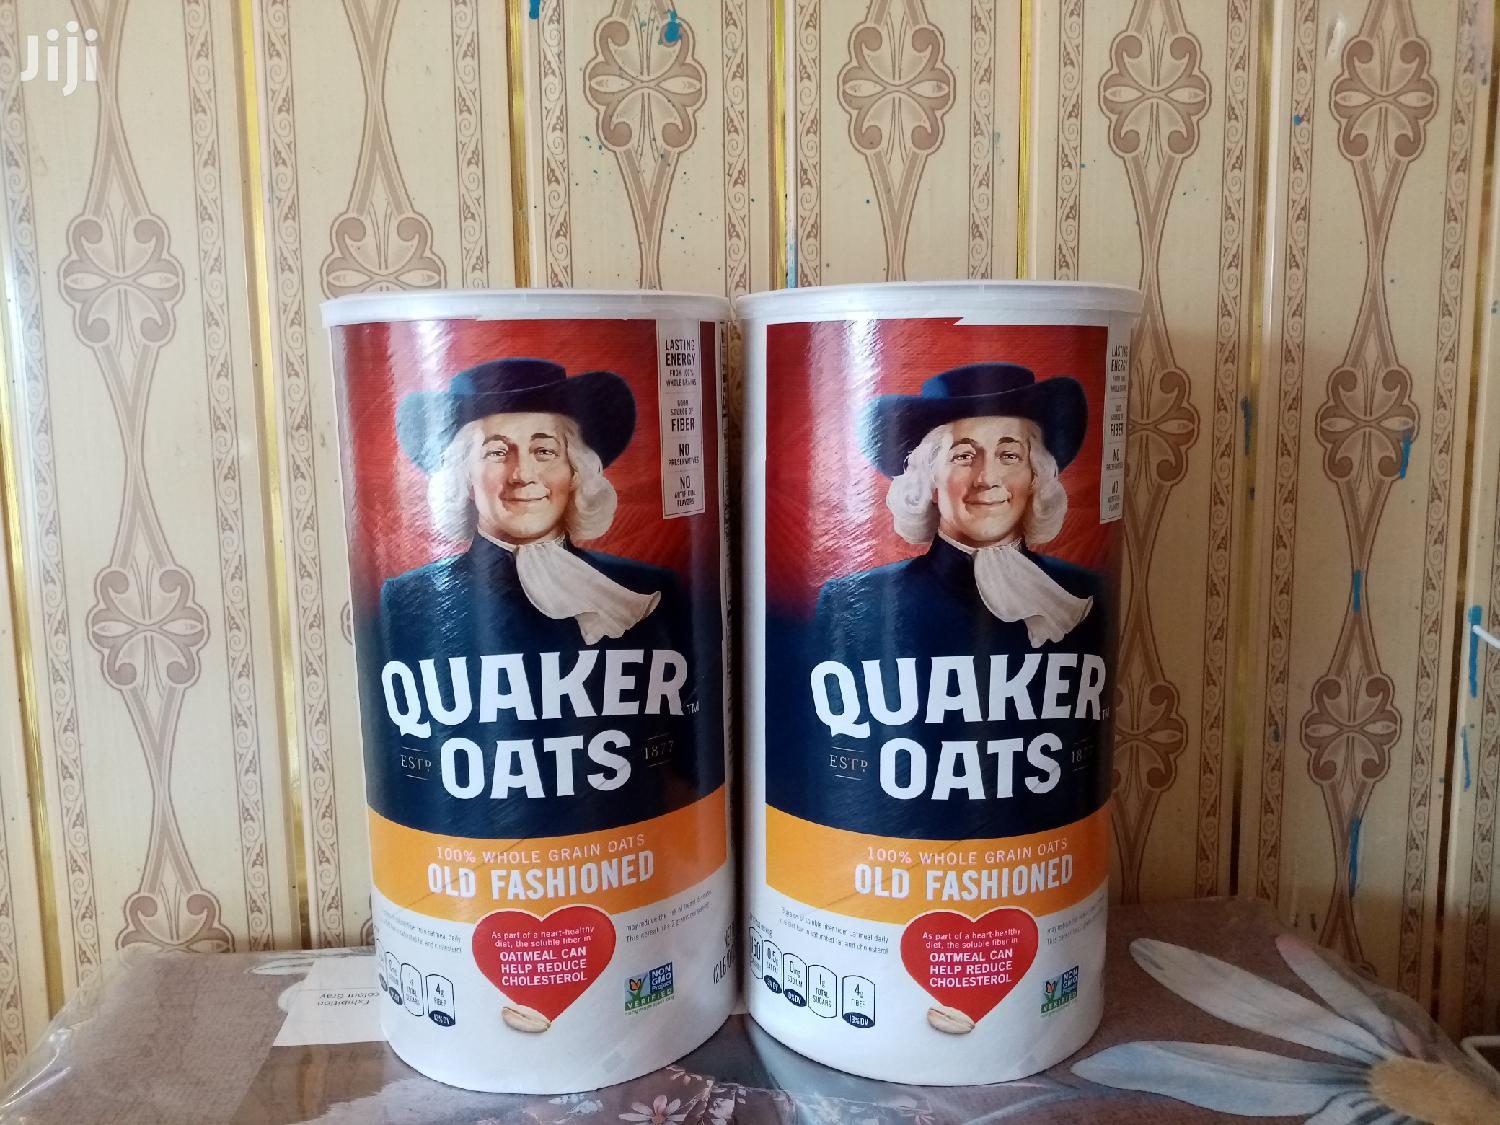 Quaker Oats Old Fashioned